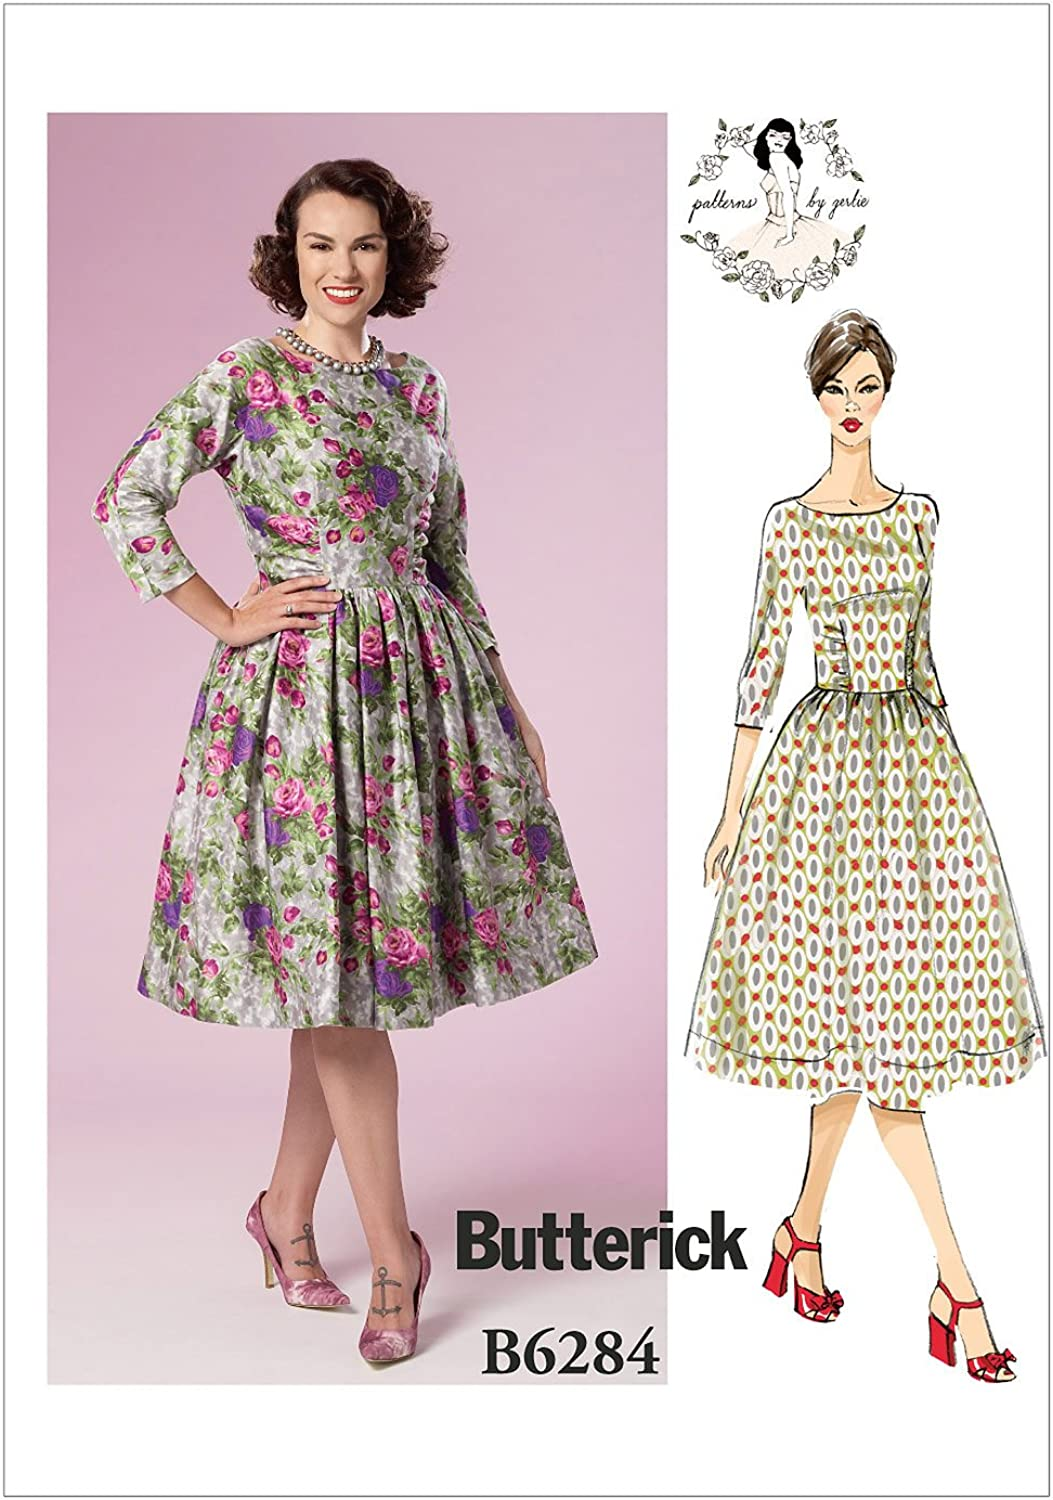 Butterick Patterns B6284 A5 Misses' Gathered Dresses by Patterns by Gertie, A5 (68101214)